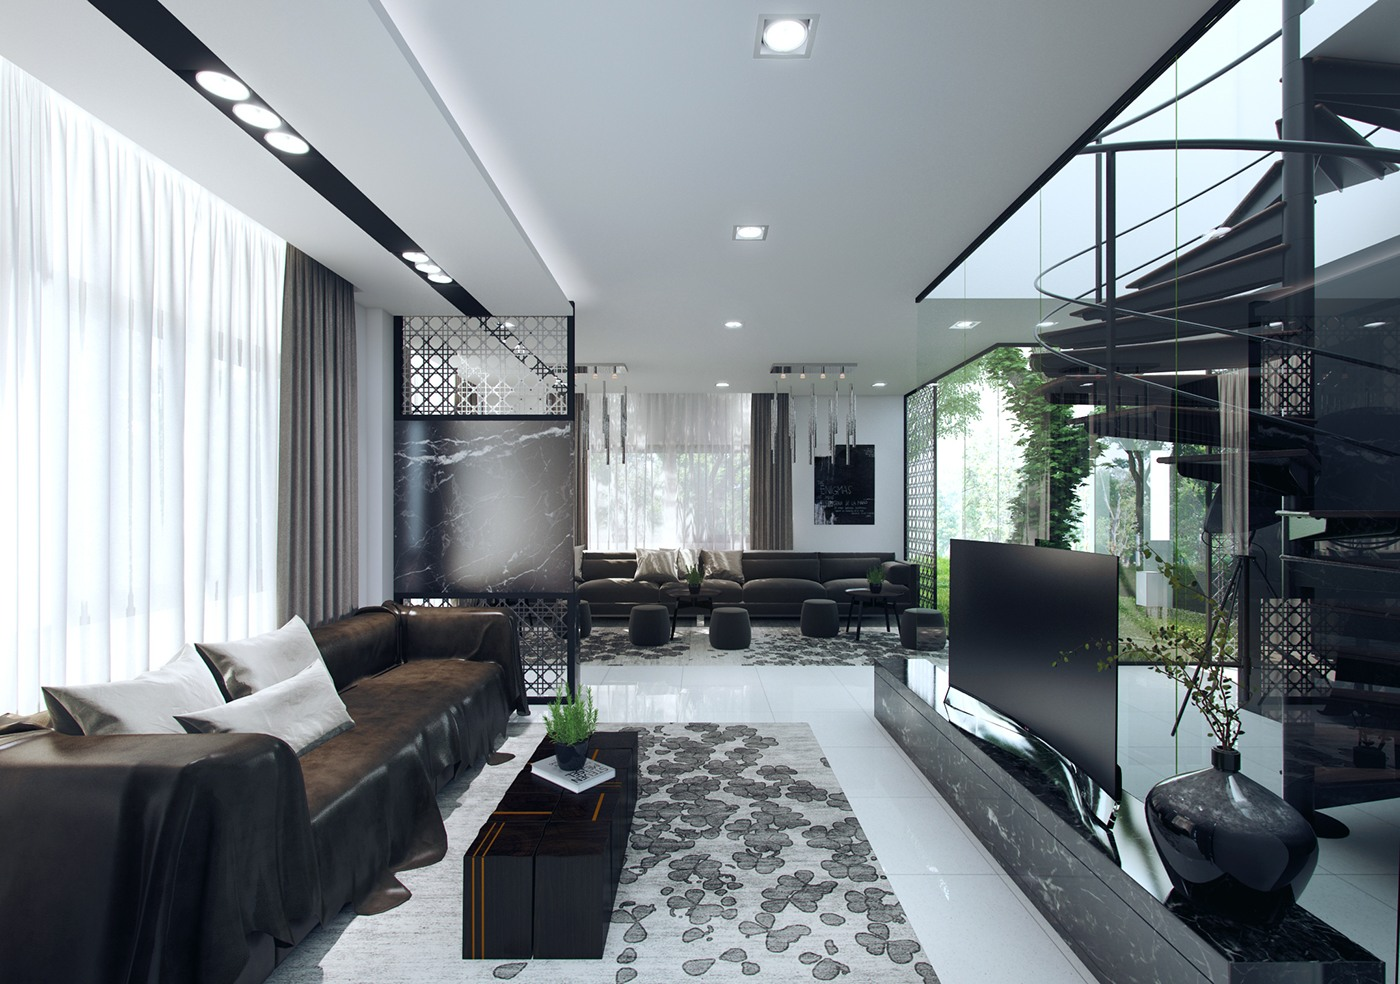 Transparent Interior Walls - 3 natural interior concepts with floor to ceiling windows